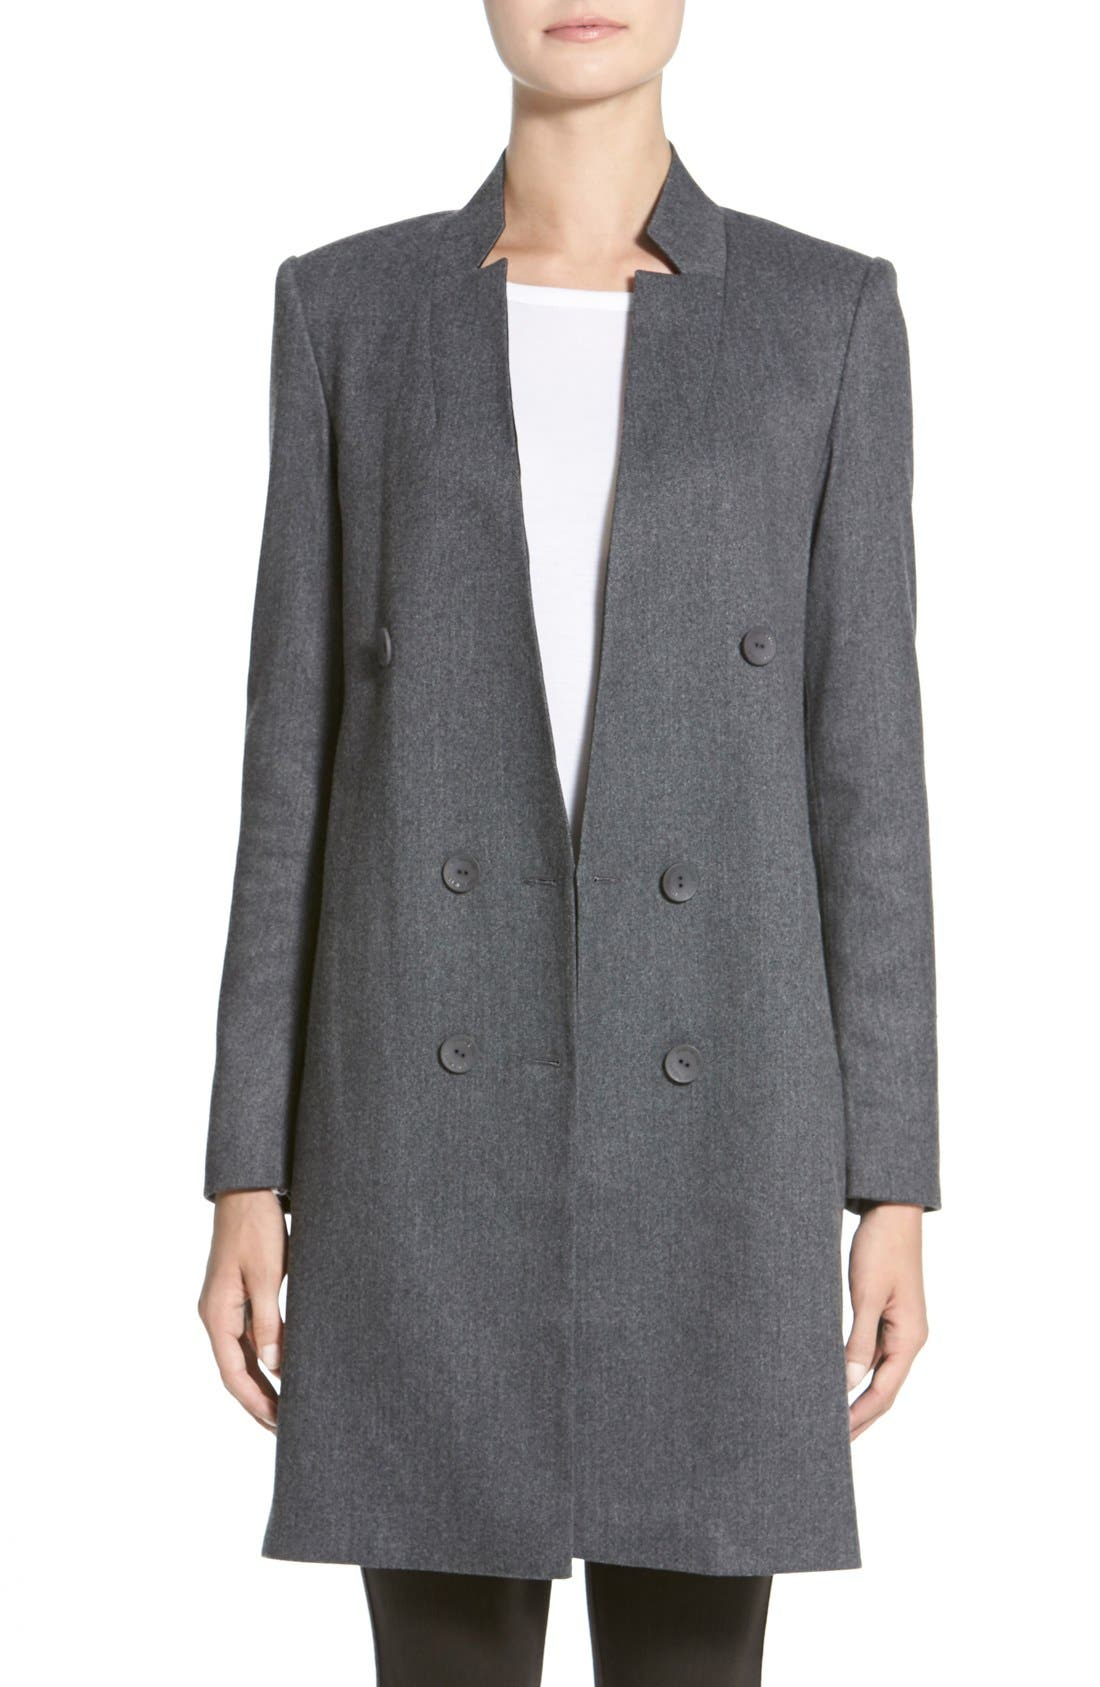 Main Image - James Jeans Double Breasted Car Coat